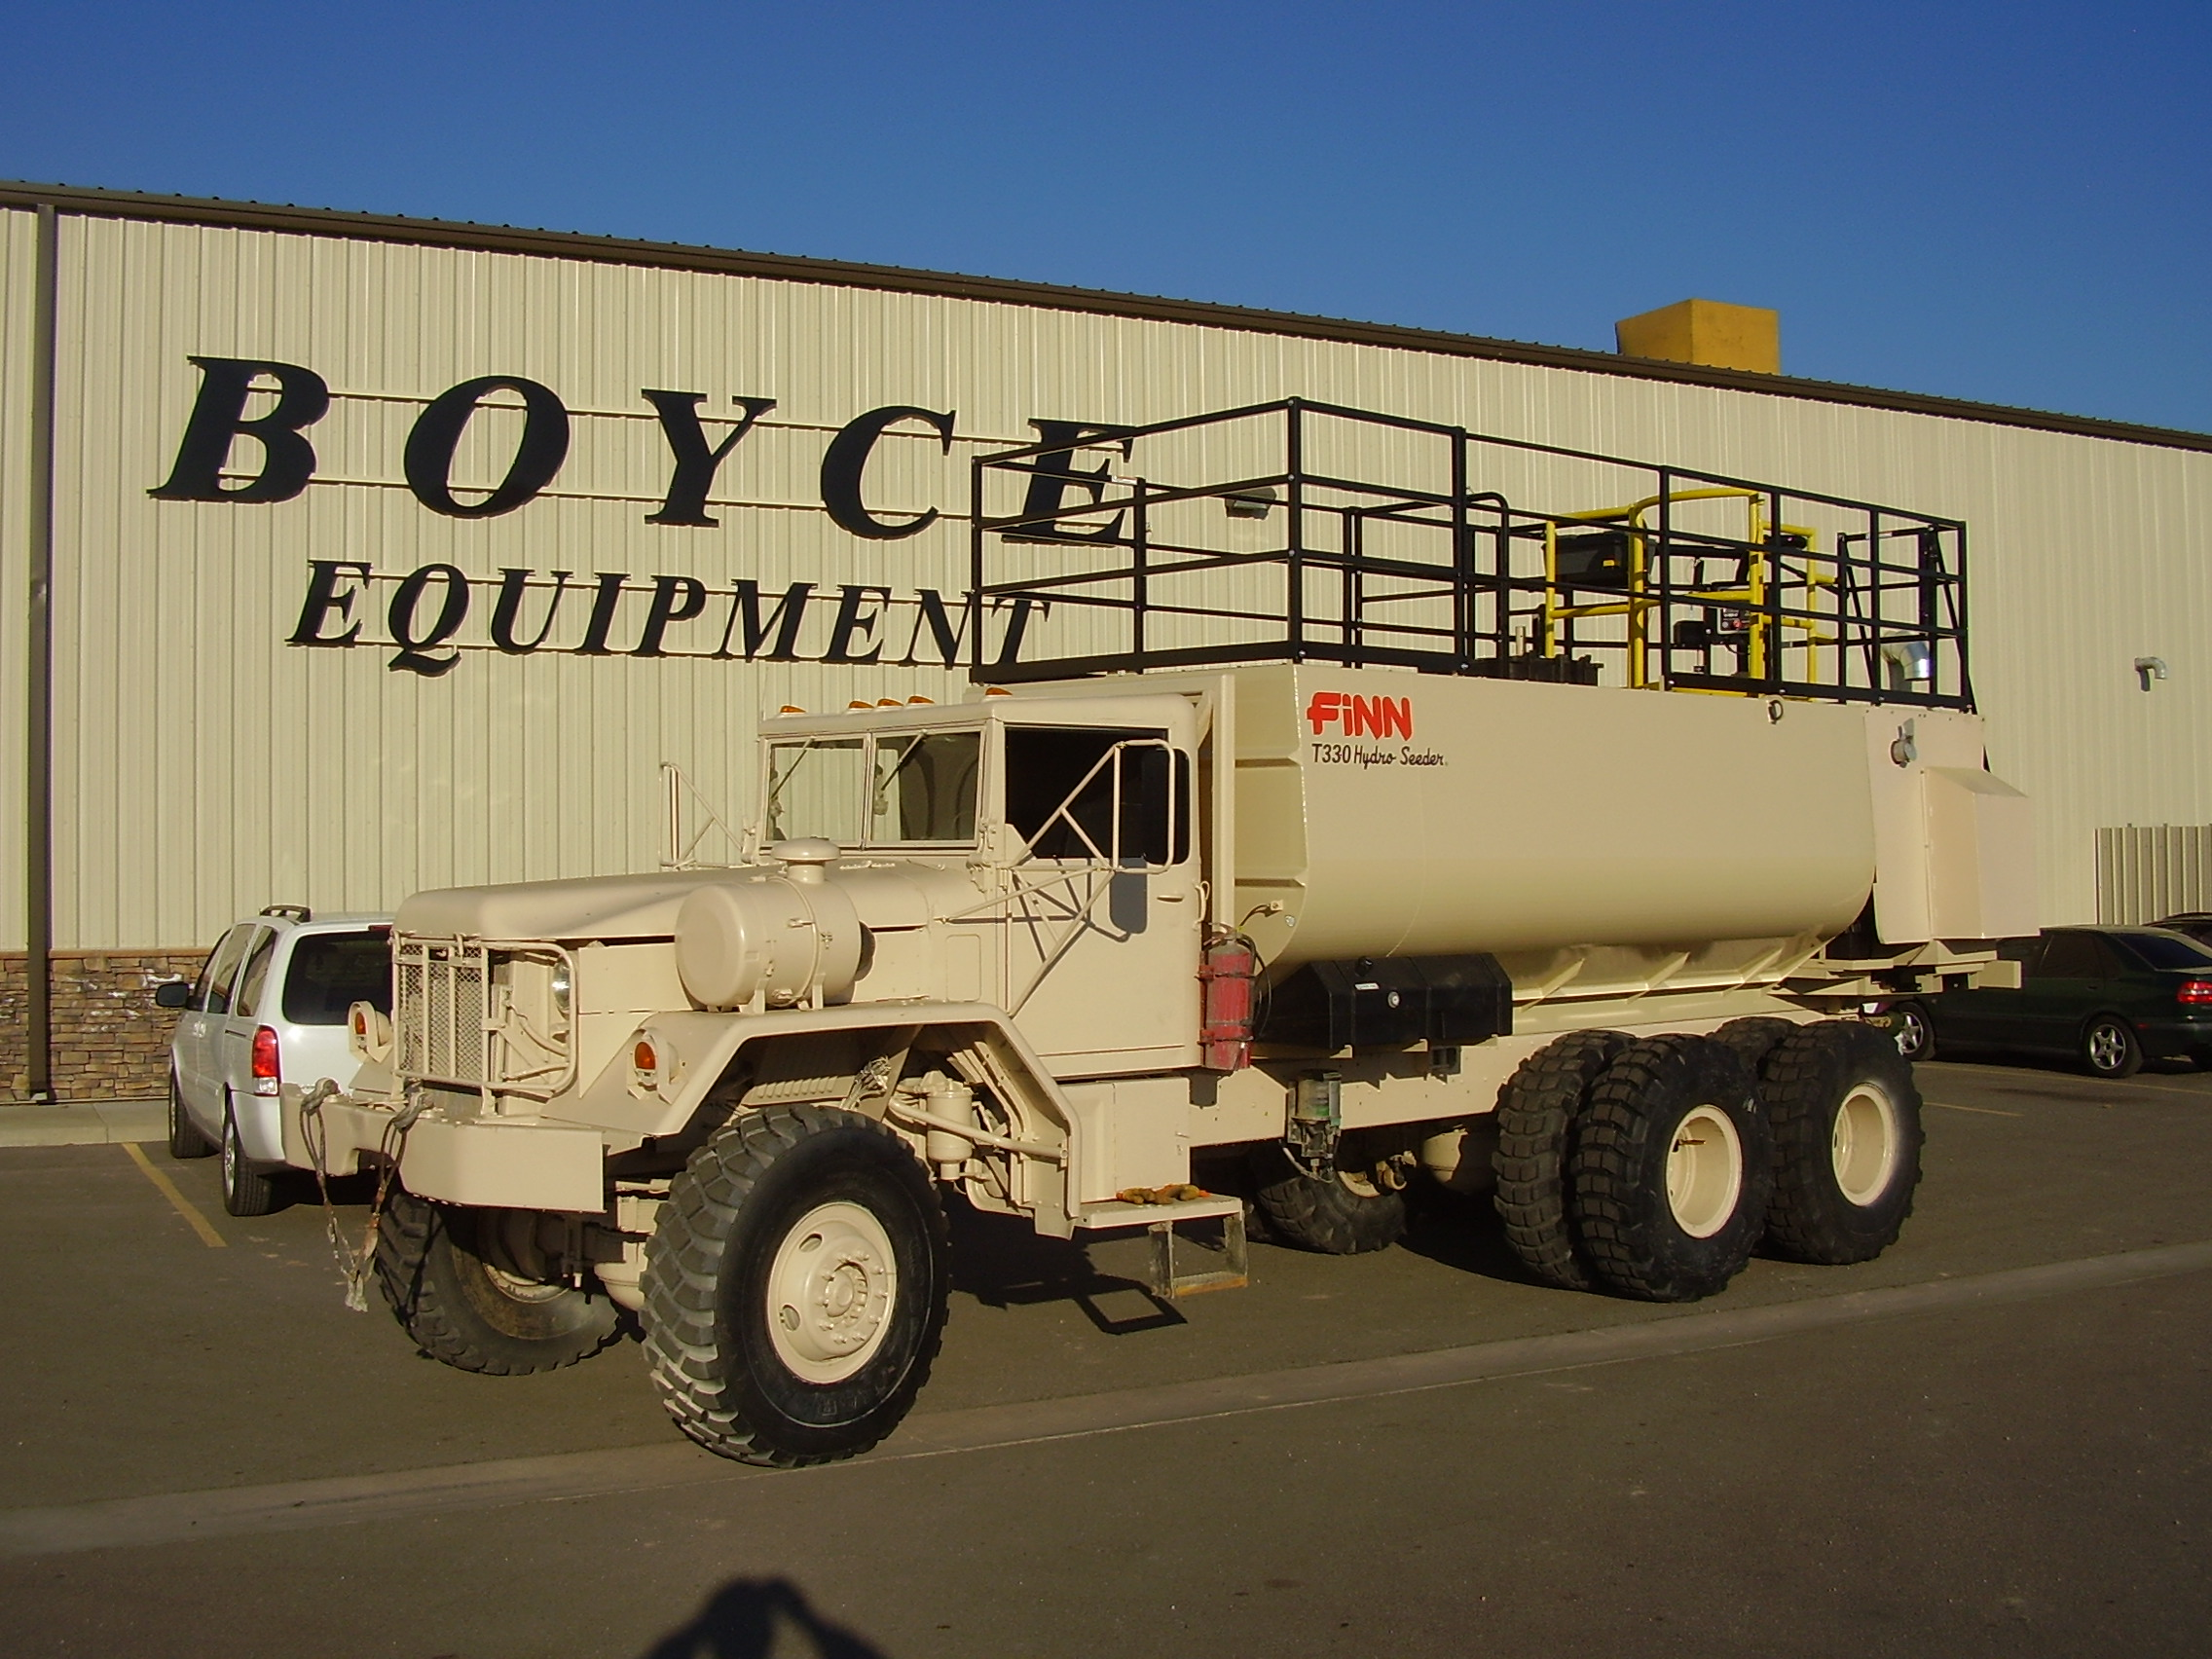 Boyce Equipment & Parts Co., Inc., Ogden, UT. 4, likes · 17 talking about this · 91 were here. Military Surplus Trucks and Parts 6x6 & 4x4 Truck Shop/5(73).